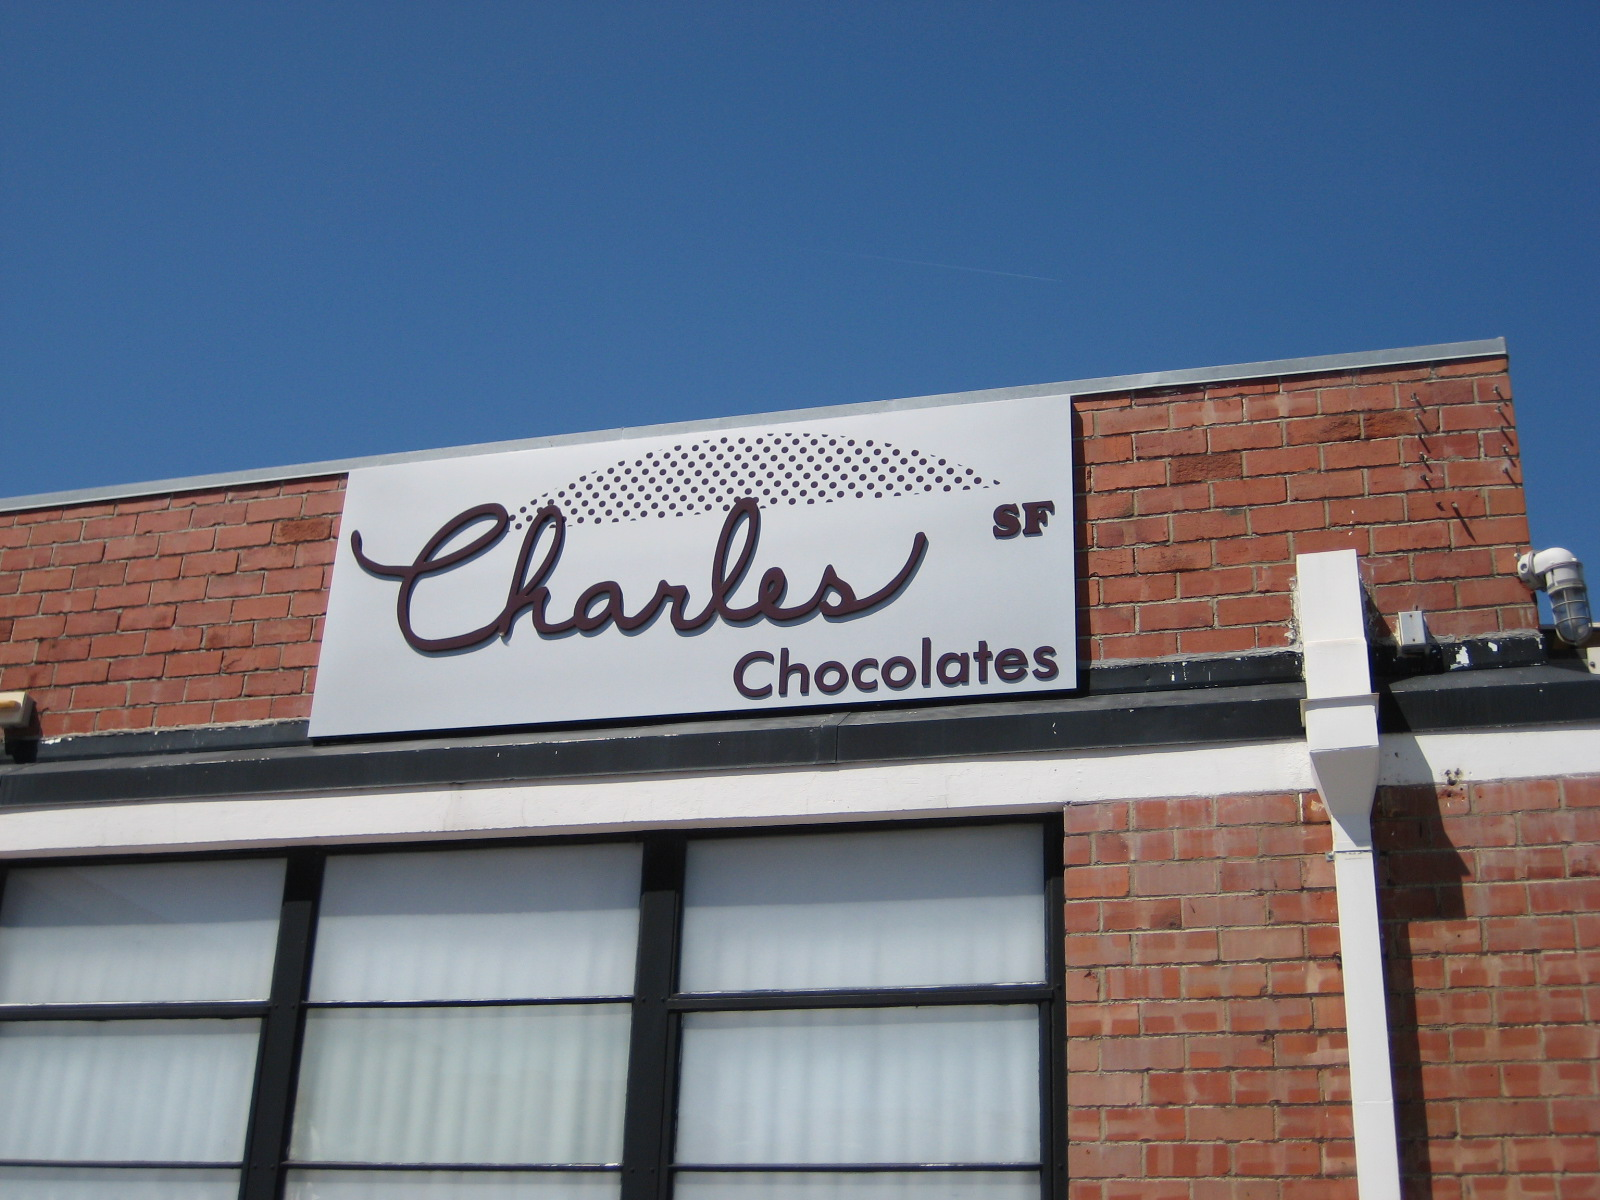 meandering eats: Charles Chocolates: A Real Life Chocolate Factory